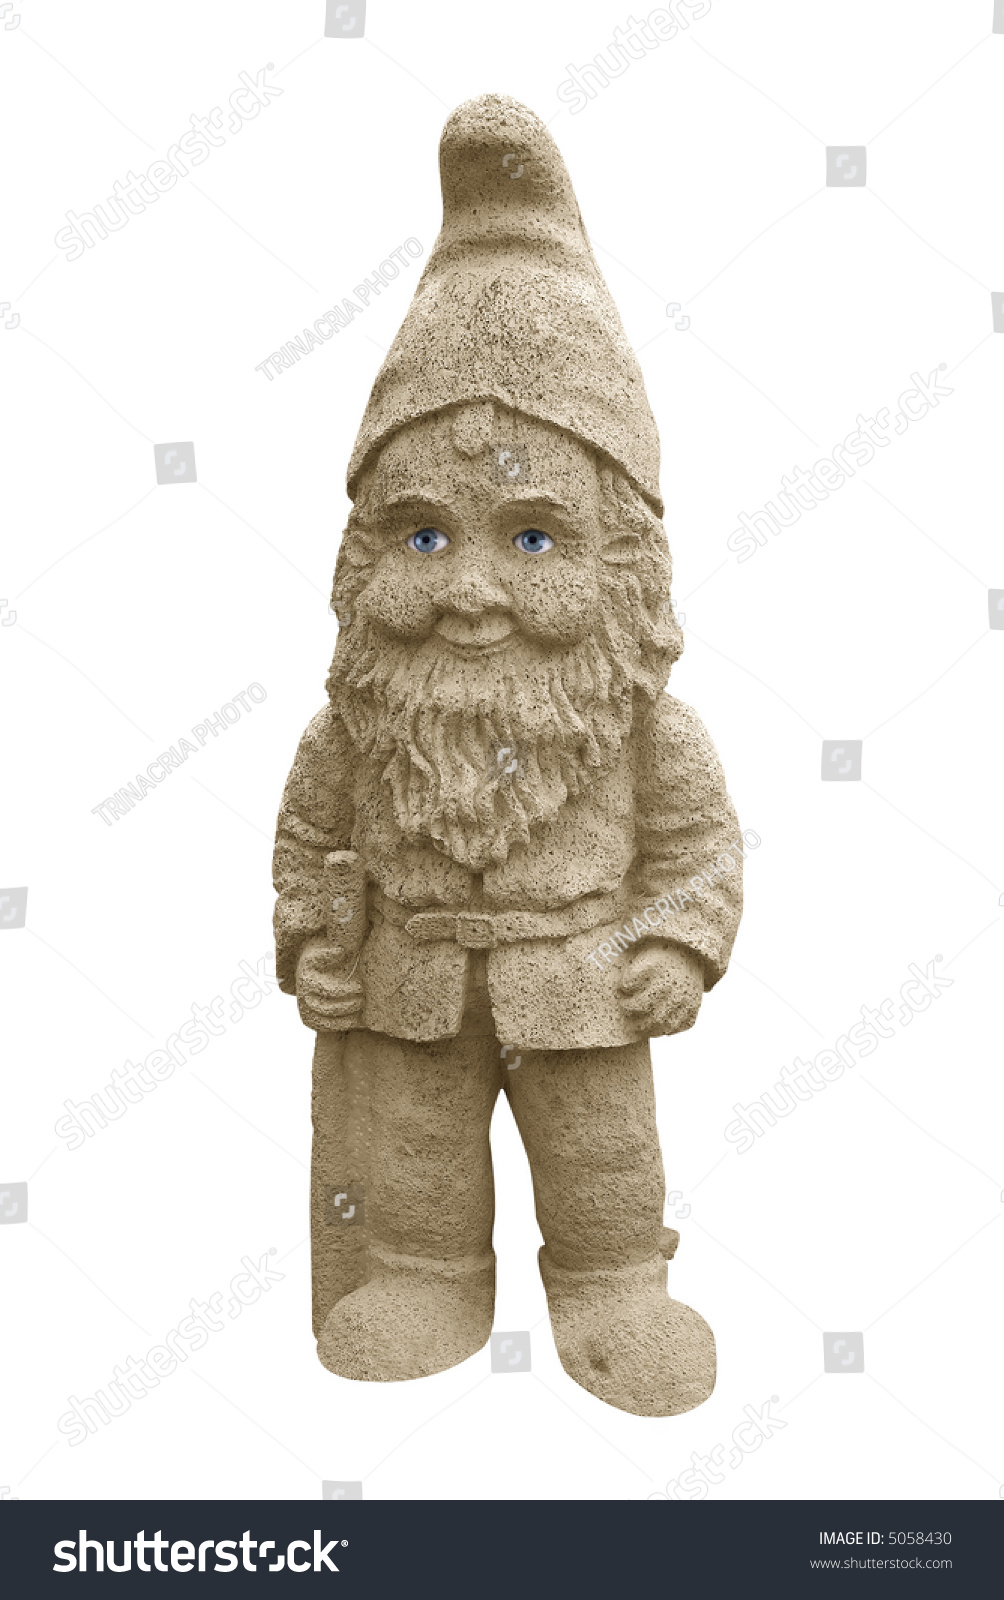 Real Gnomes: Garden Gnome With Real Eyes Isolated Over White With A